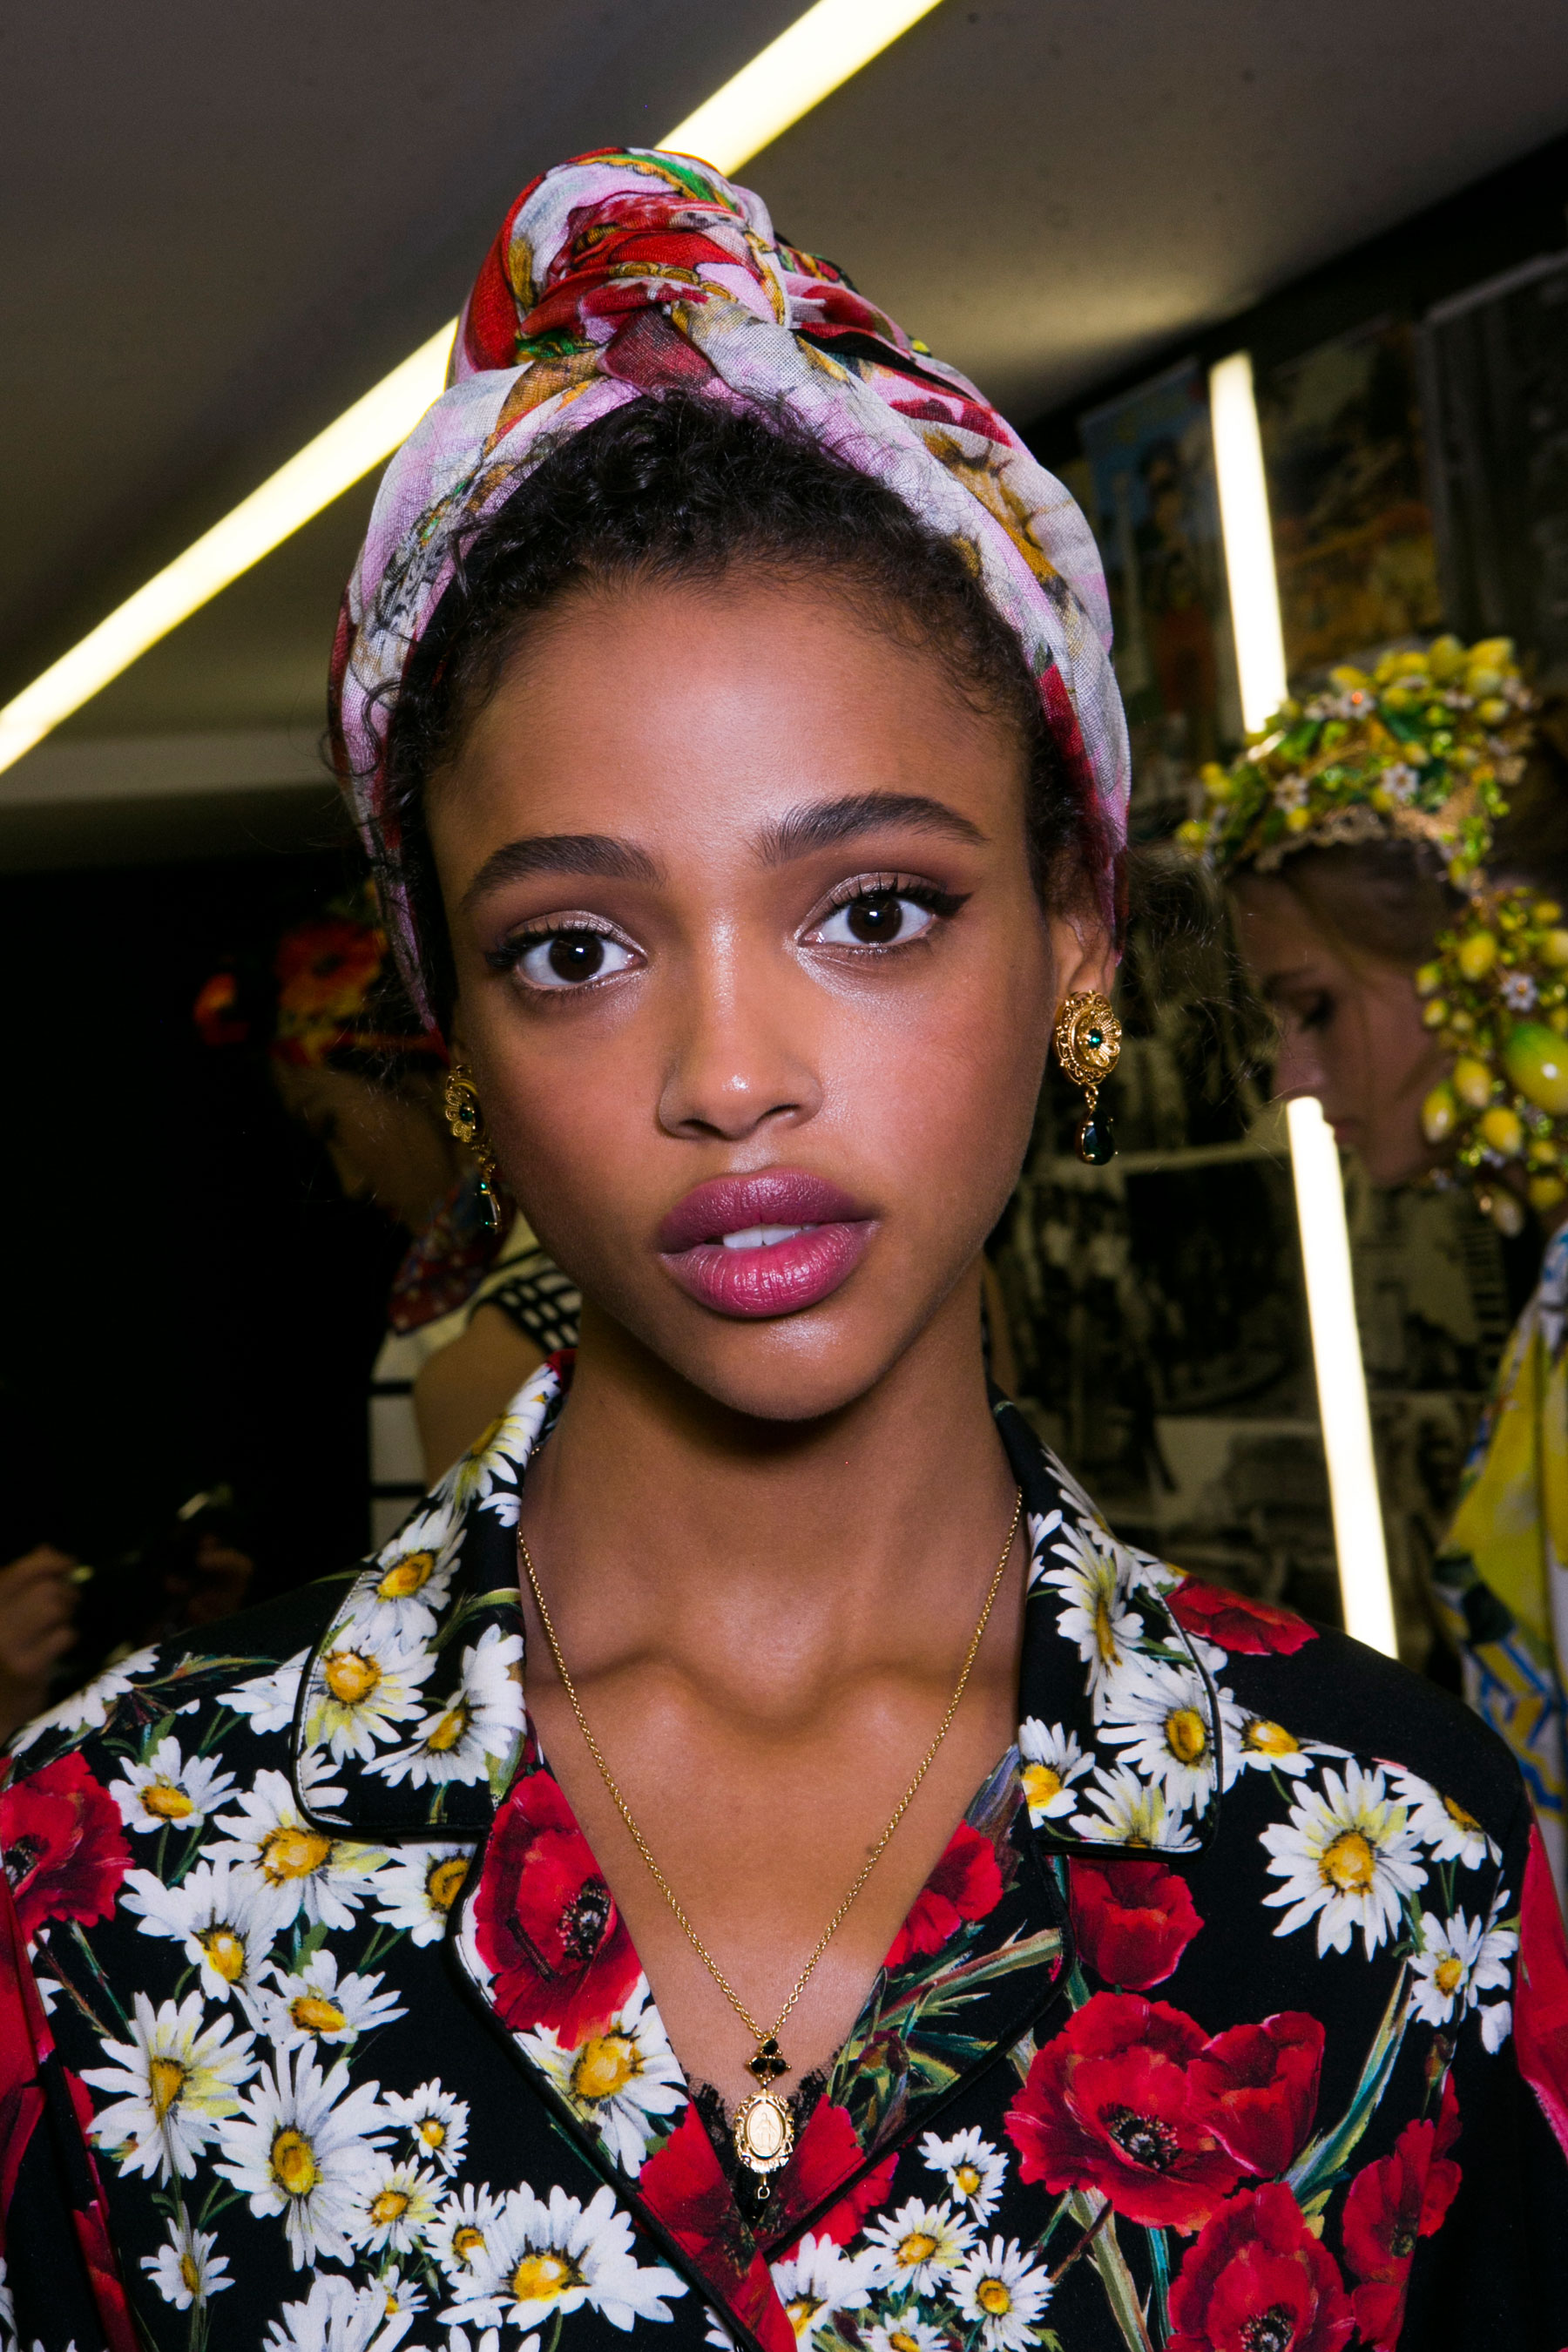 Dolce-and-Gabanna-backstage-beauty-spring-2016-fashion-show-the-impression-051